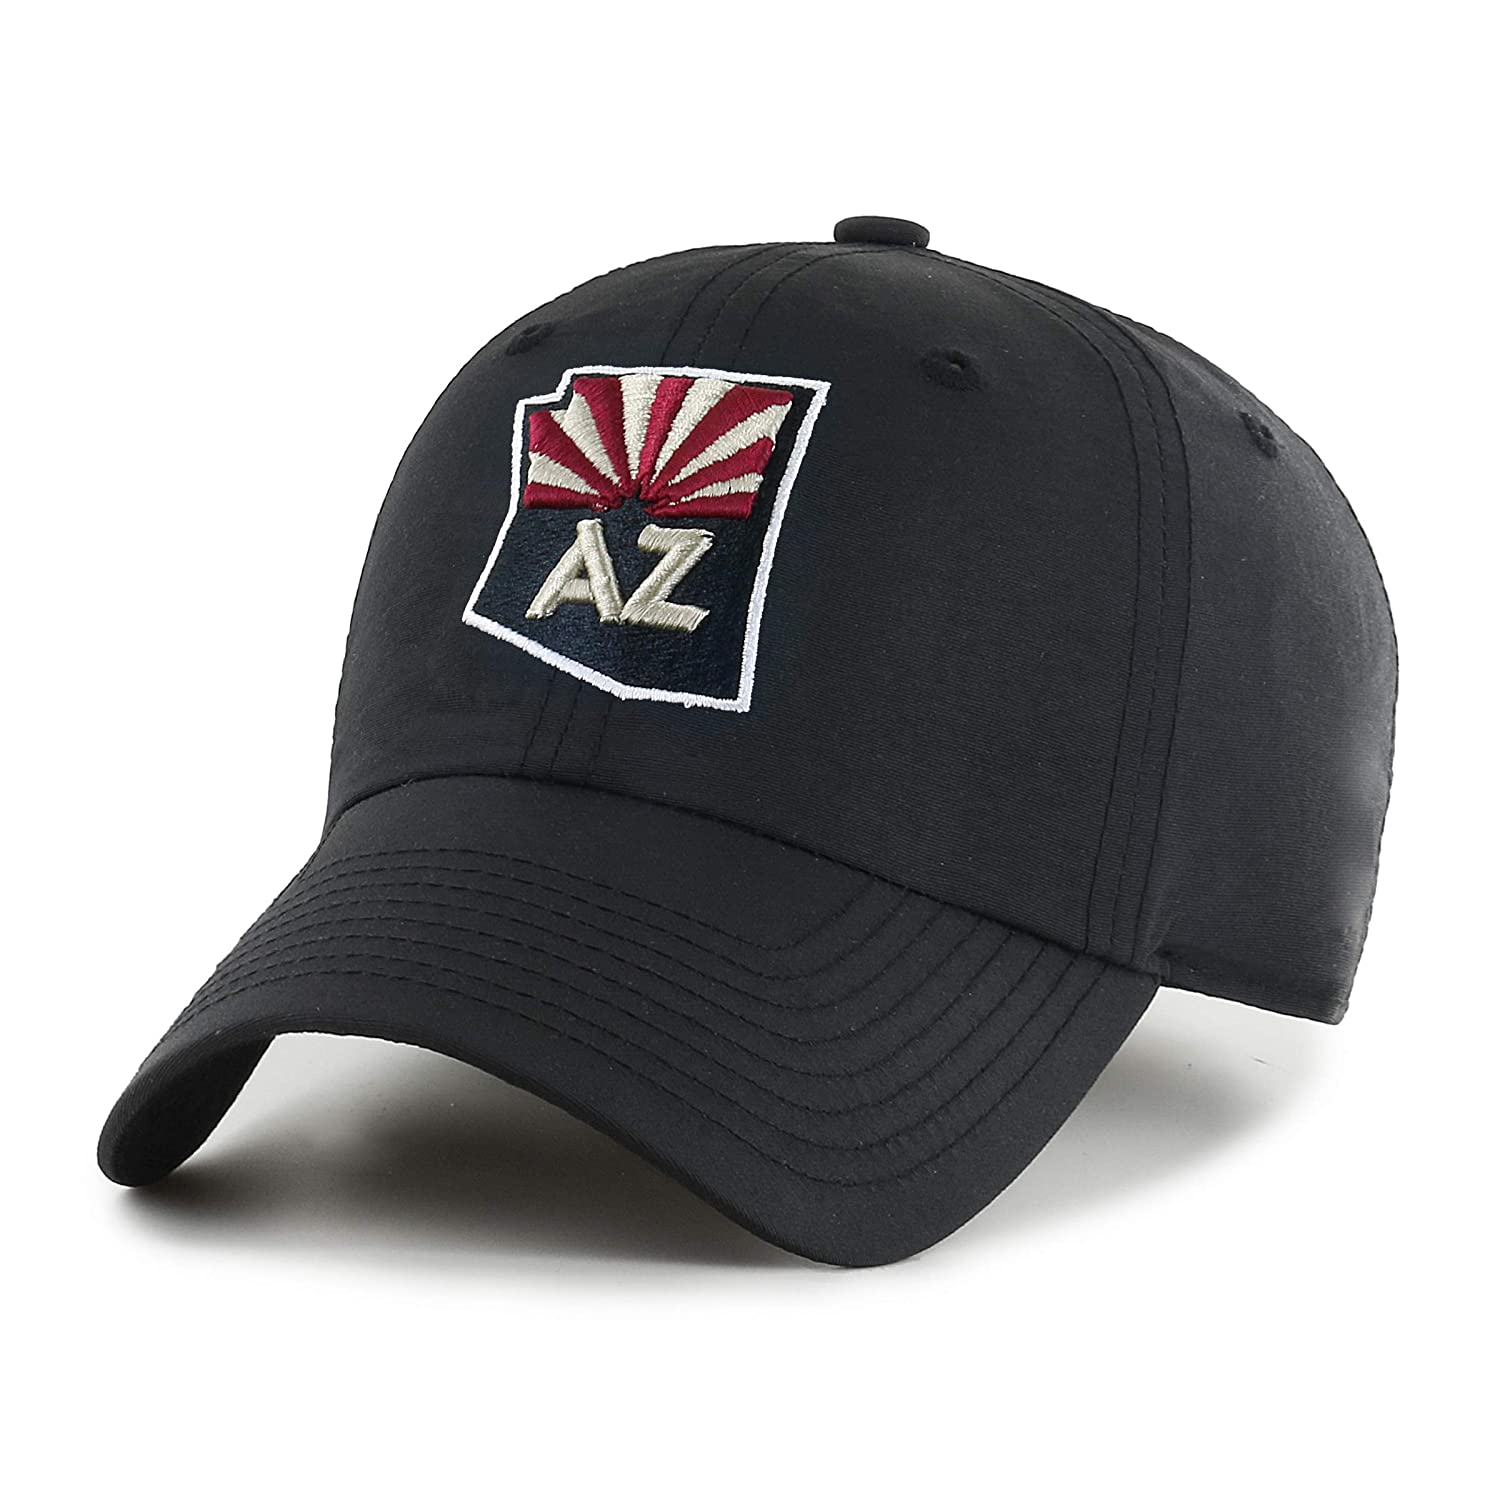 cheap for discount c85be a0326 Amazon.com   OTS NHL Arizona Coyotes Men s Wind Swept Challenger Adjustable  Hat, Black, One Size   Clothing